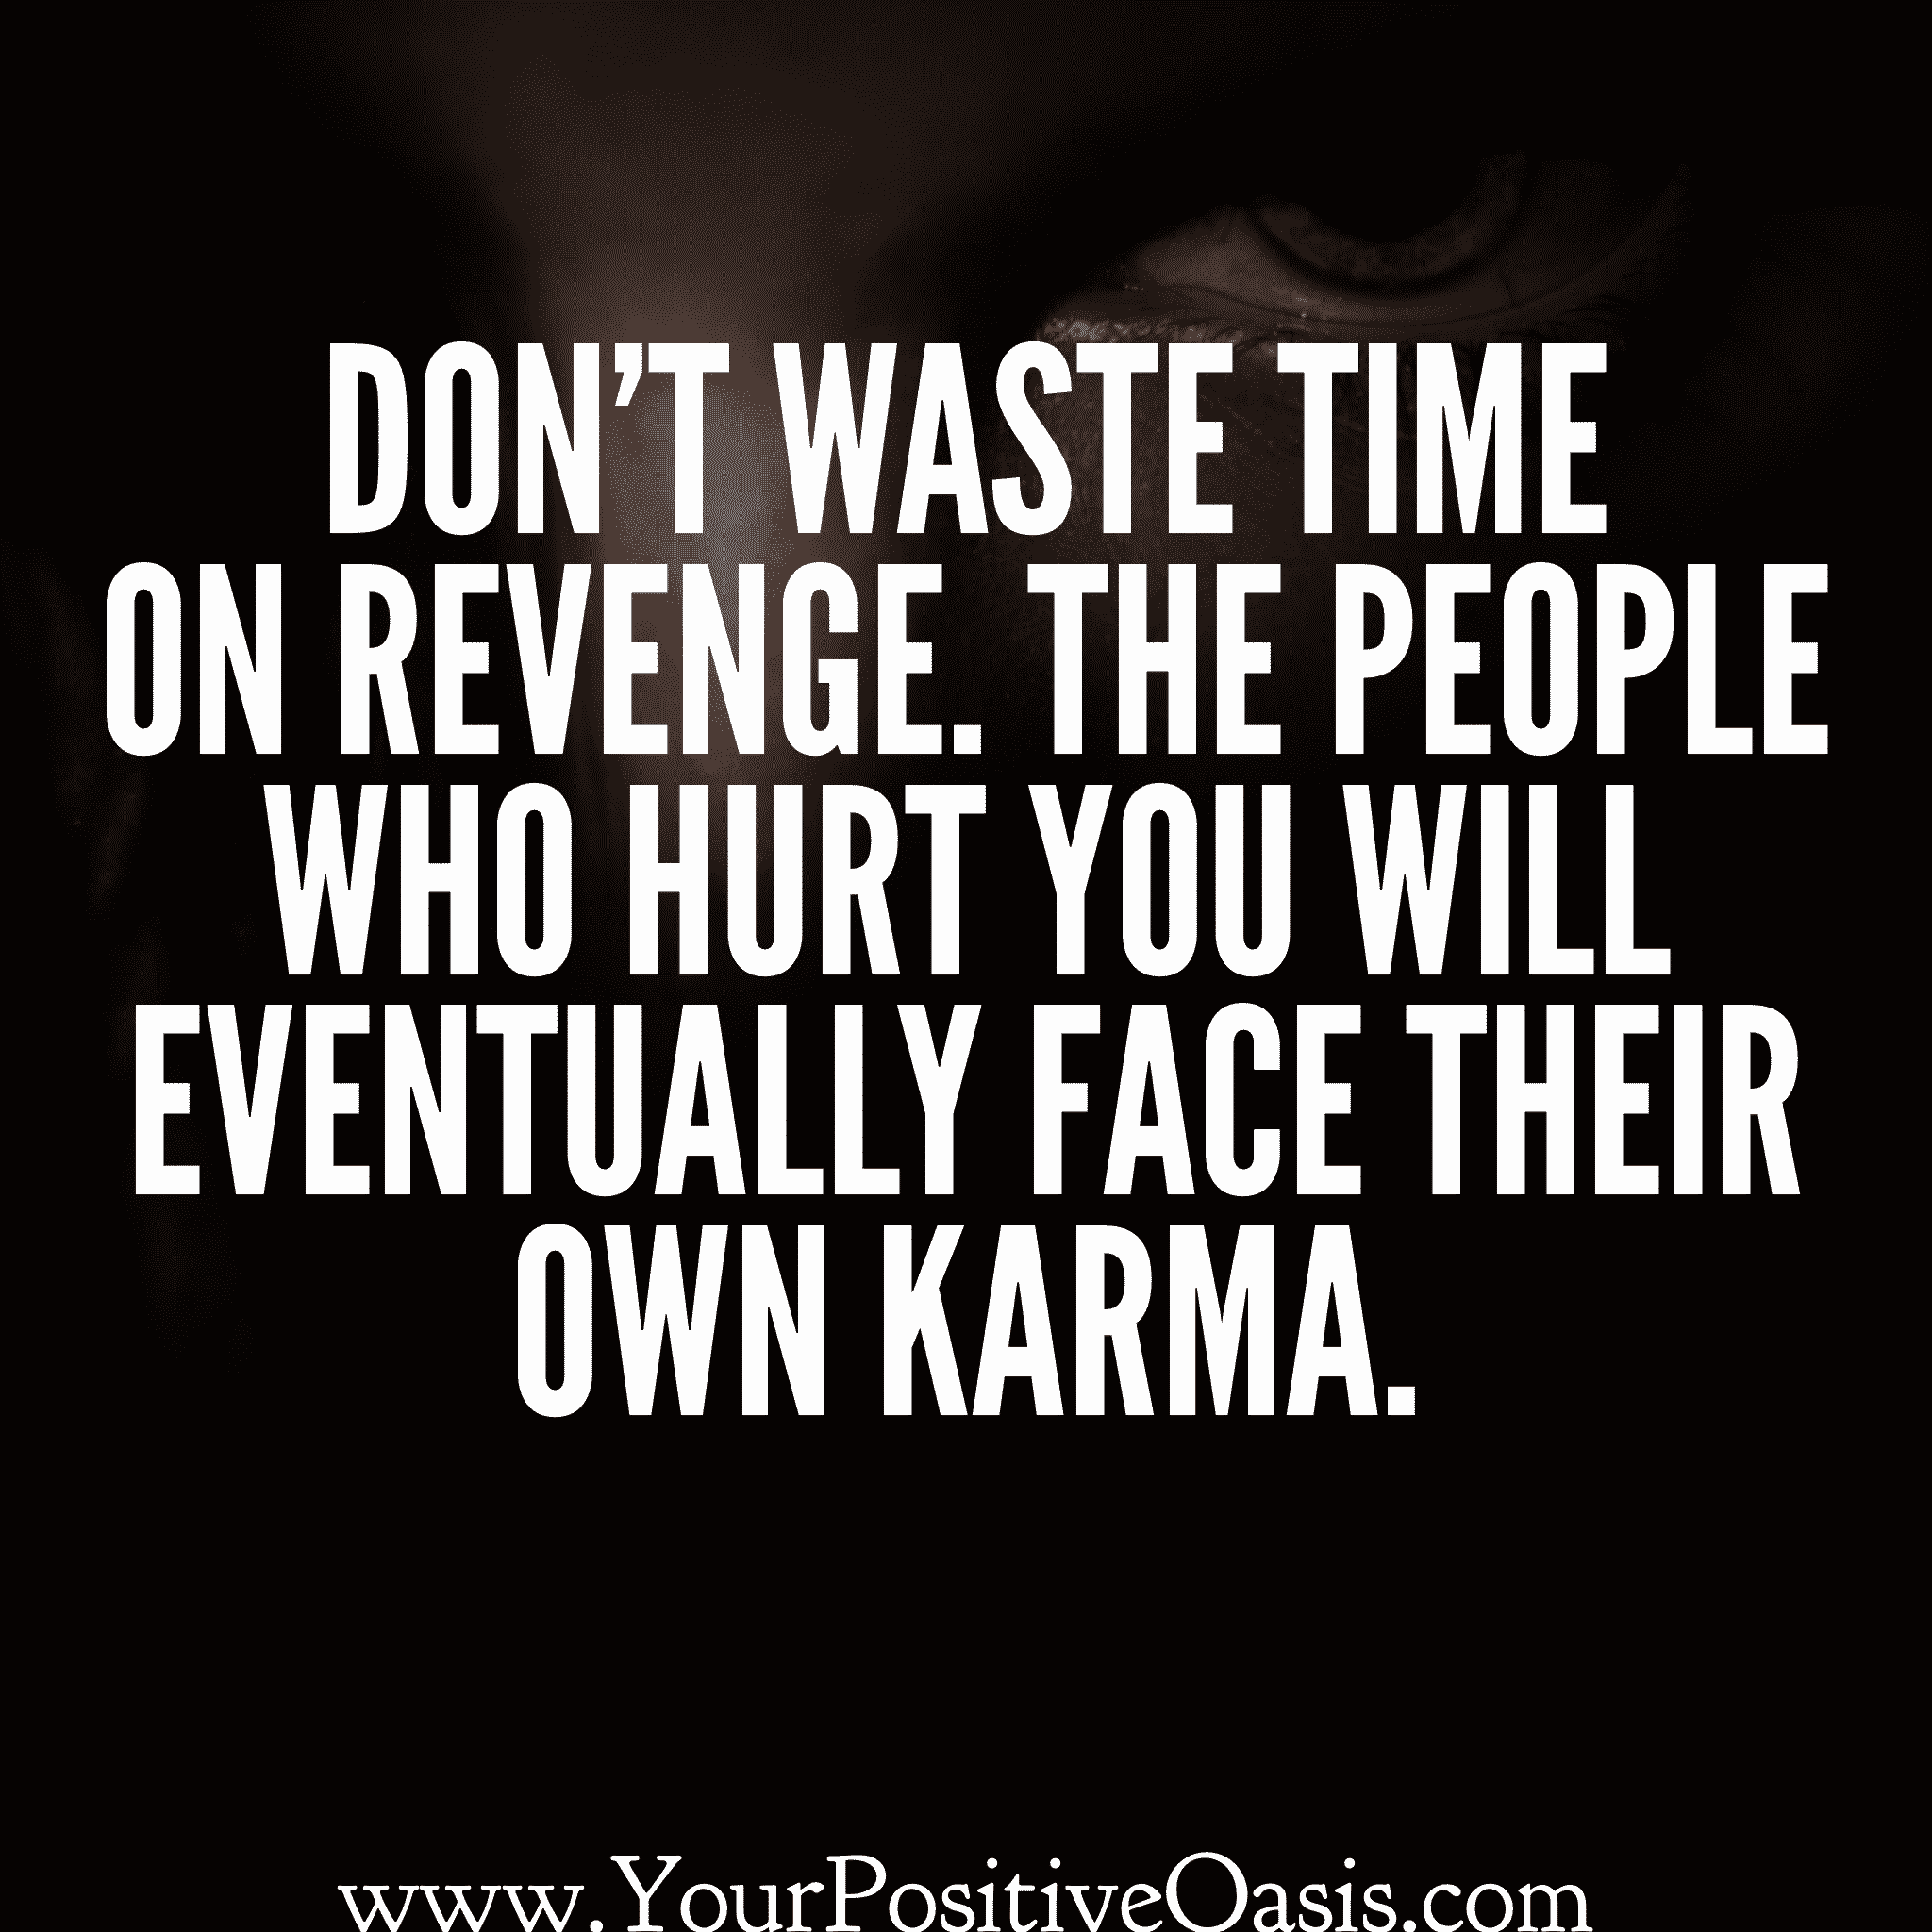 30 Powerful Karma Quotes About Reaping What You Sow